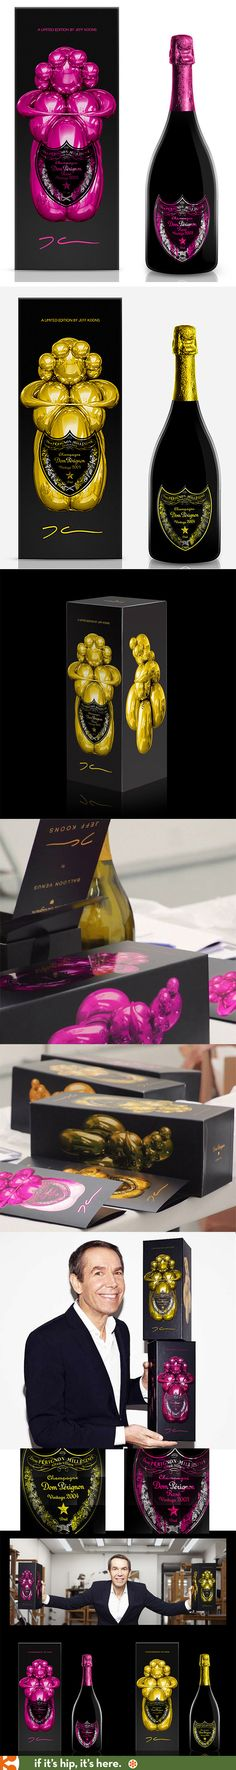 The Jeff Koons X Dom Perignon gift boxes and bottles PD #taninotanino #vinosmaximum